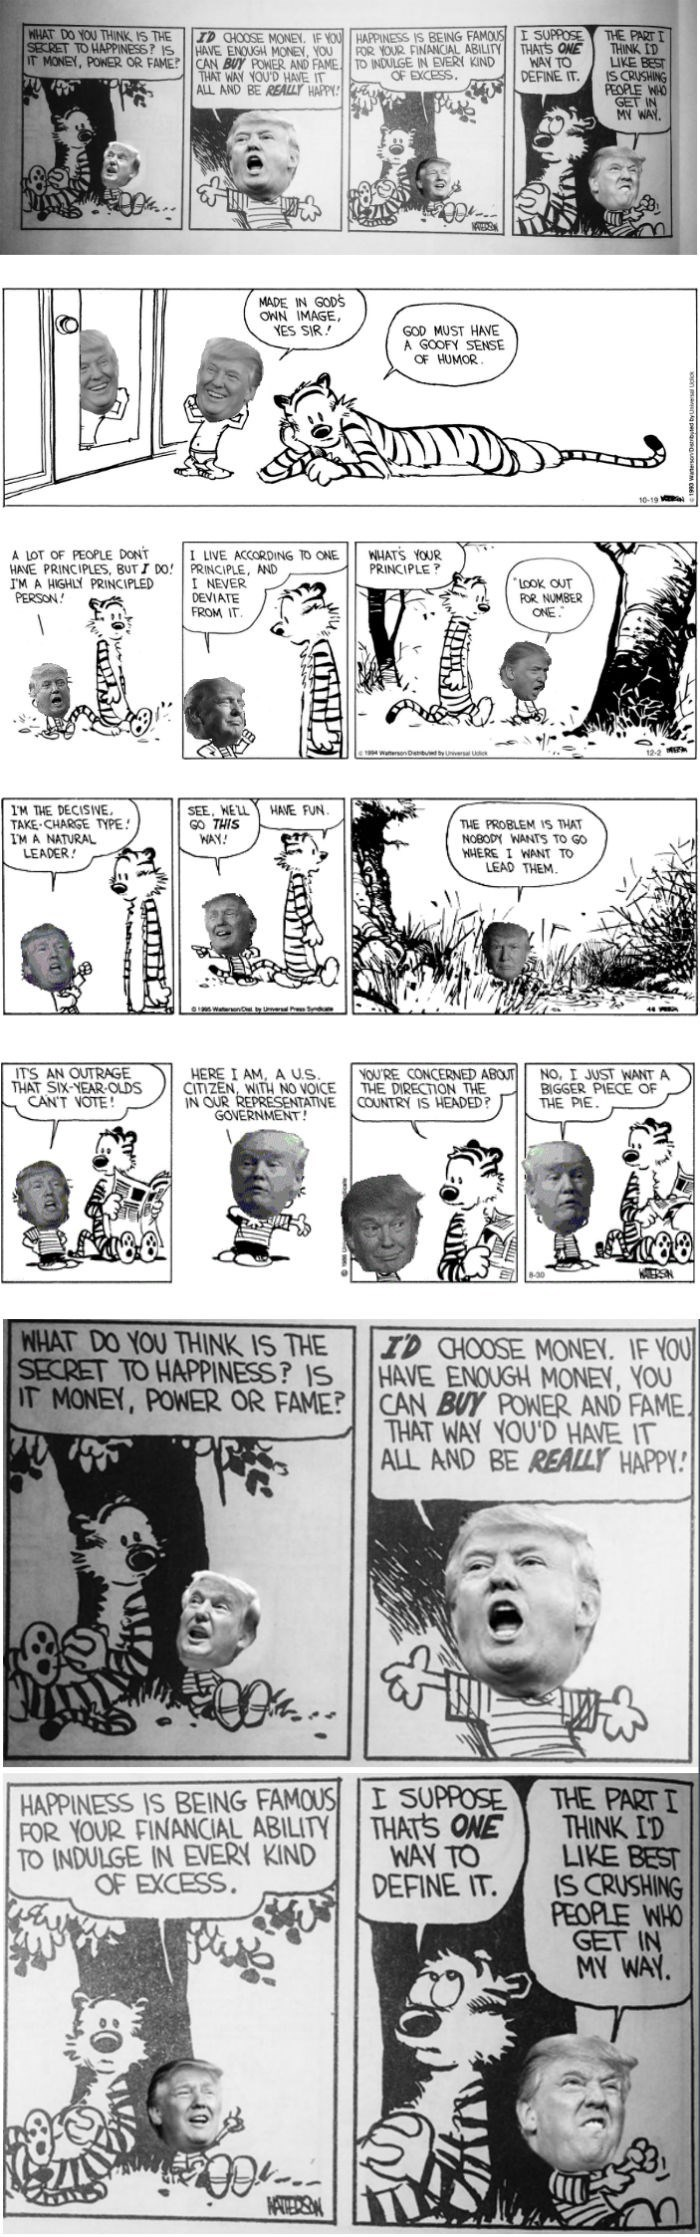 funny political comic strips Donald Trump fits seamlessly into Calvin and Hobbes Comics creating Donald and Hobbes